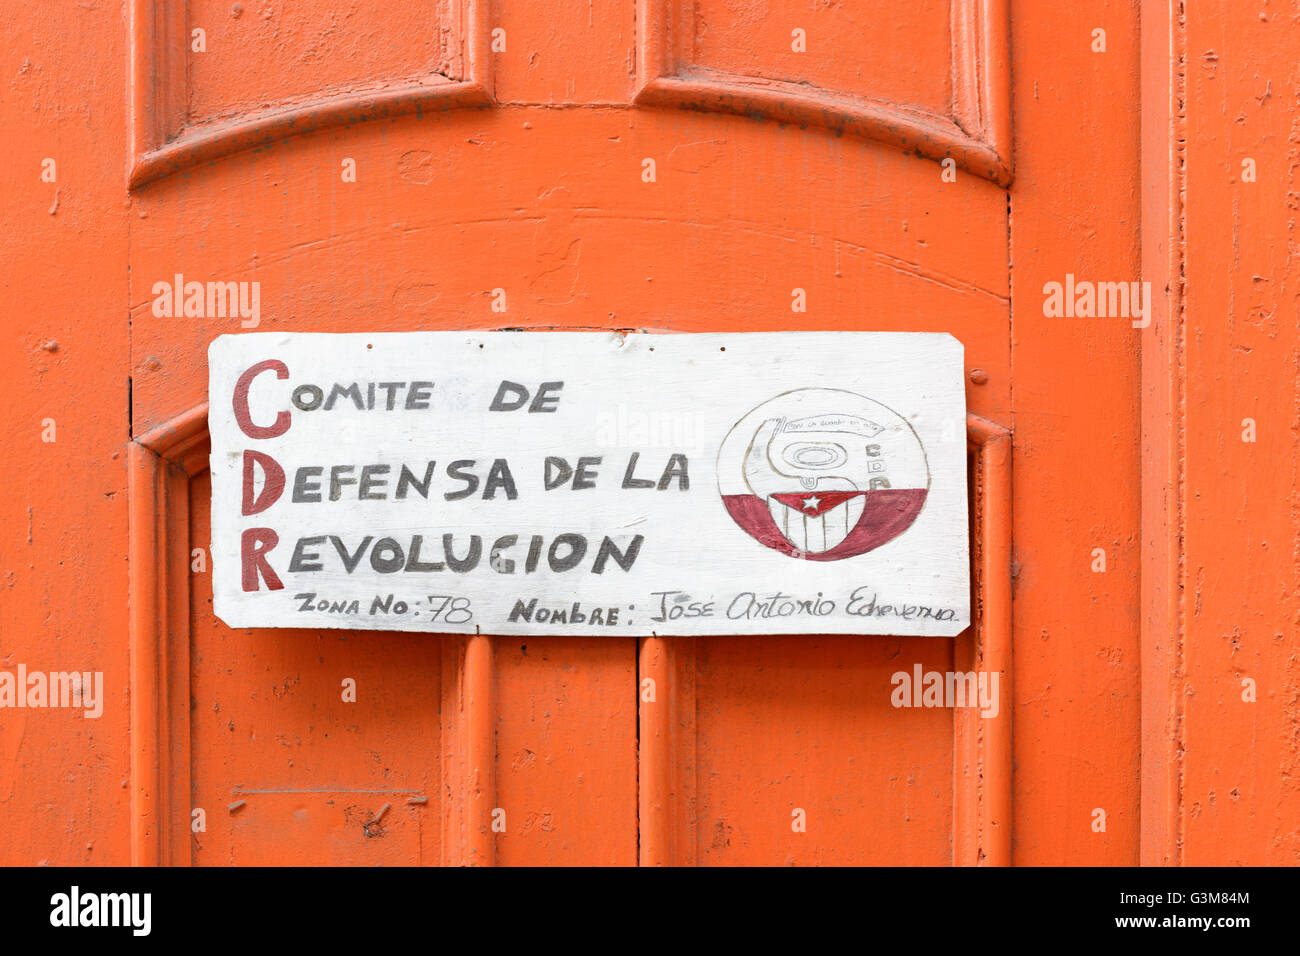 Hand-made sign on an orange door for a local neighbourhood 'Committee for the Defence of the Revolution' - Stock Image